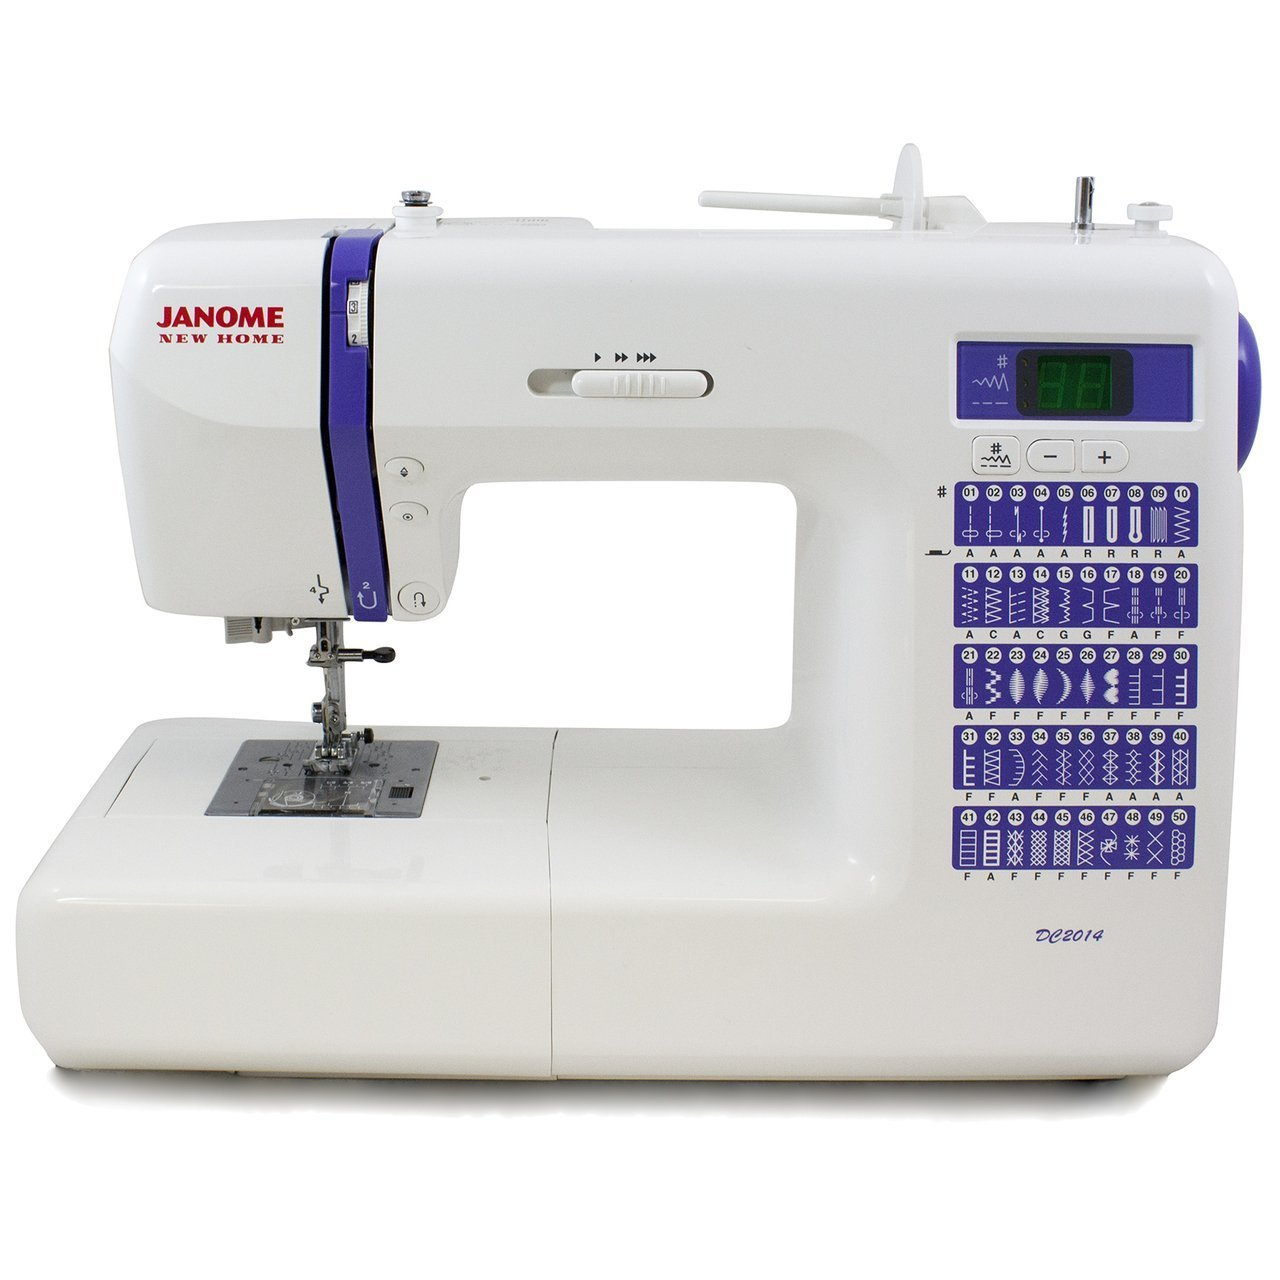 Top 12 Best Sewing Machines under $100, $200, $300 to $500 5